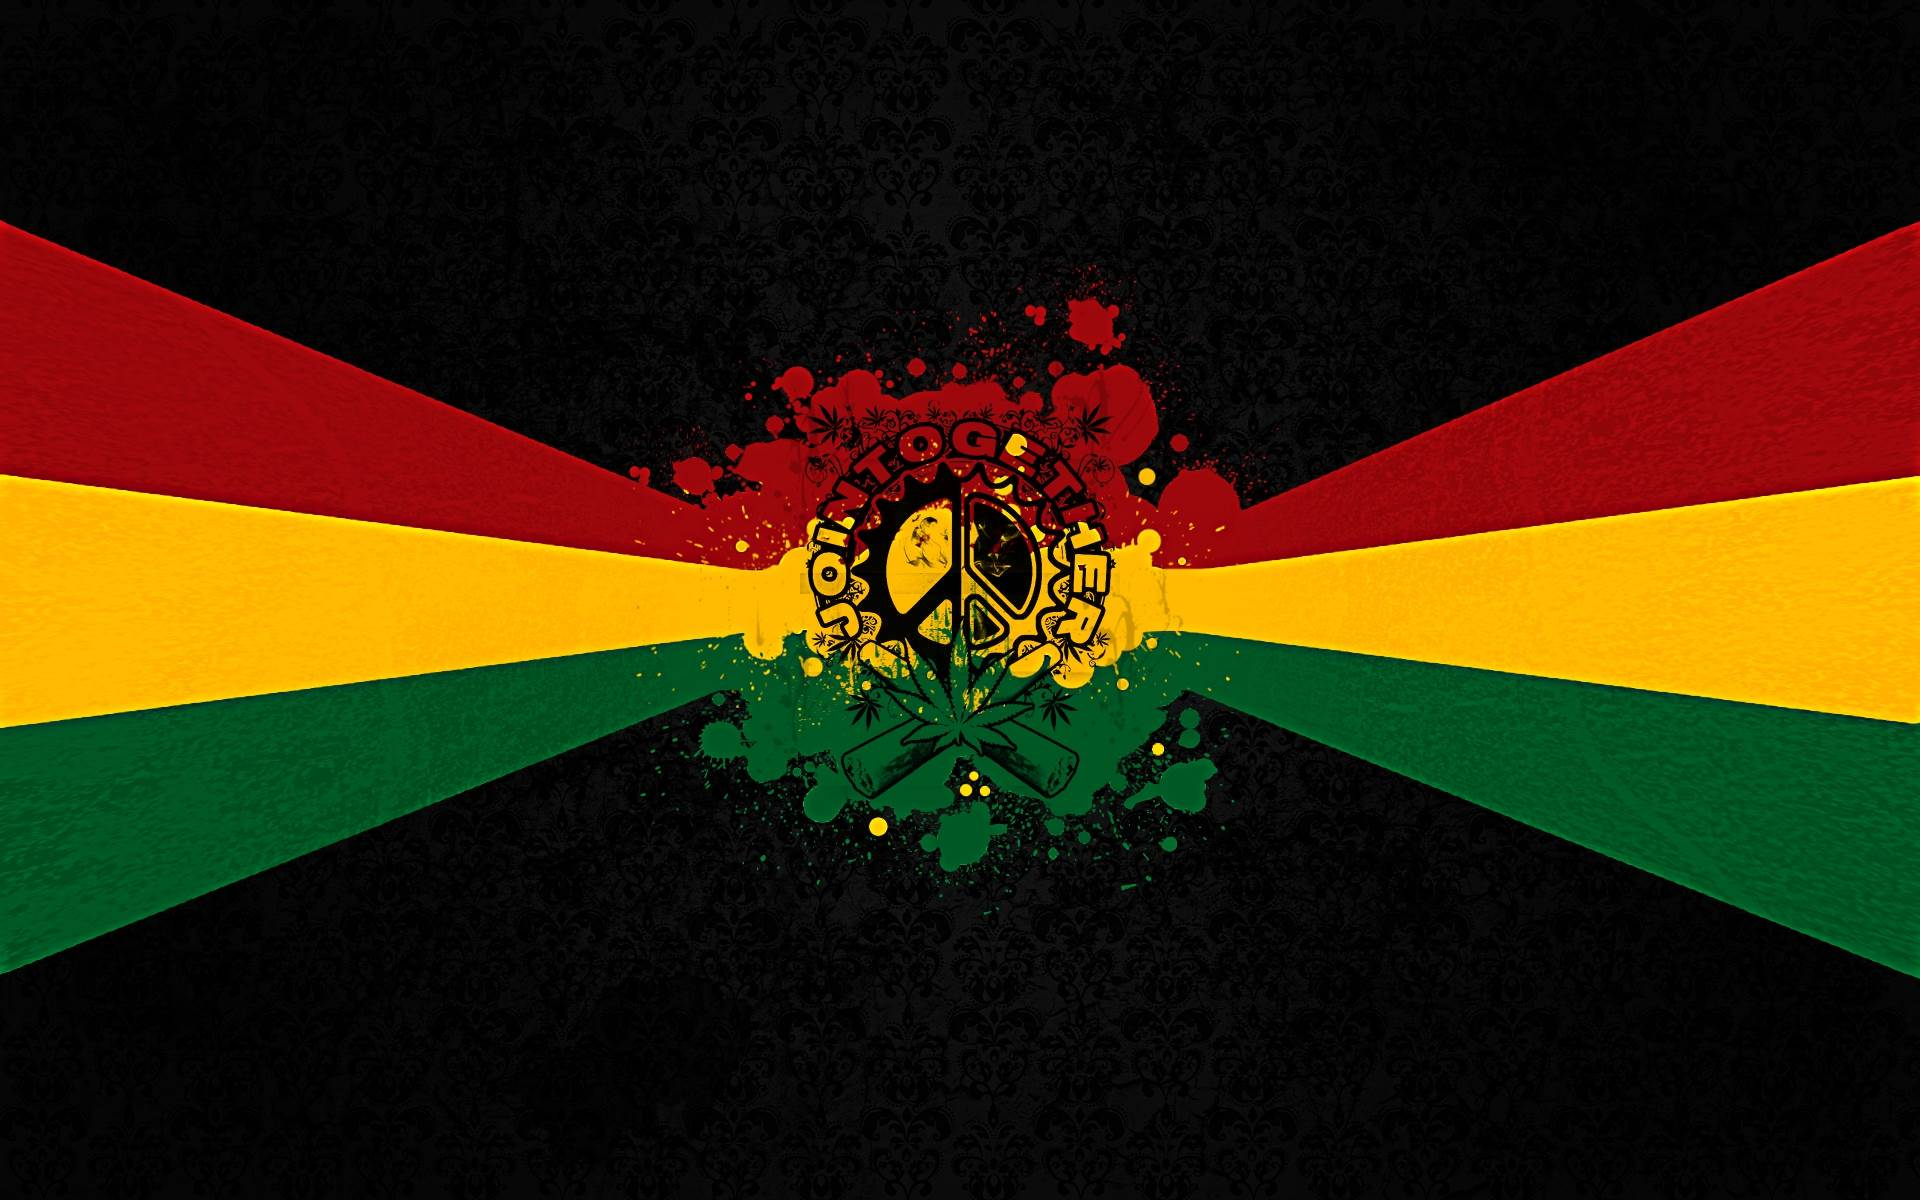 Reggae Wallpaper HD Best Collection Download High Quality 1920x1200